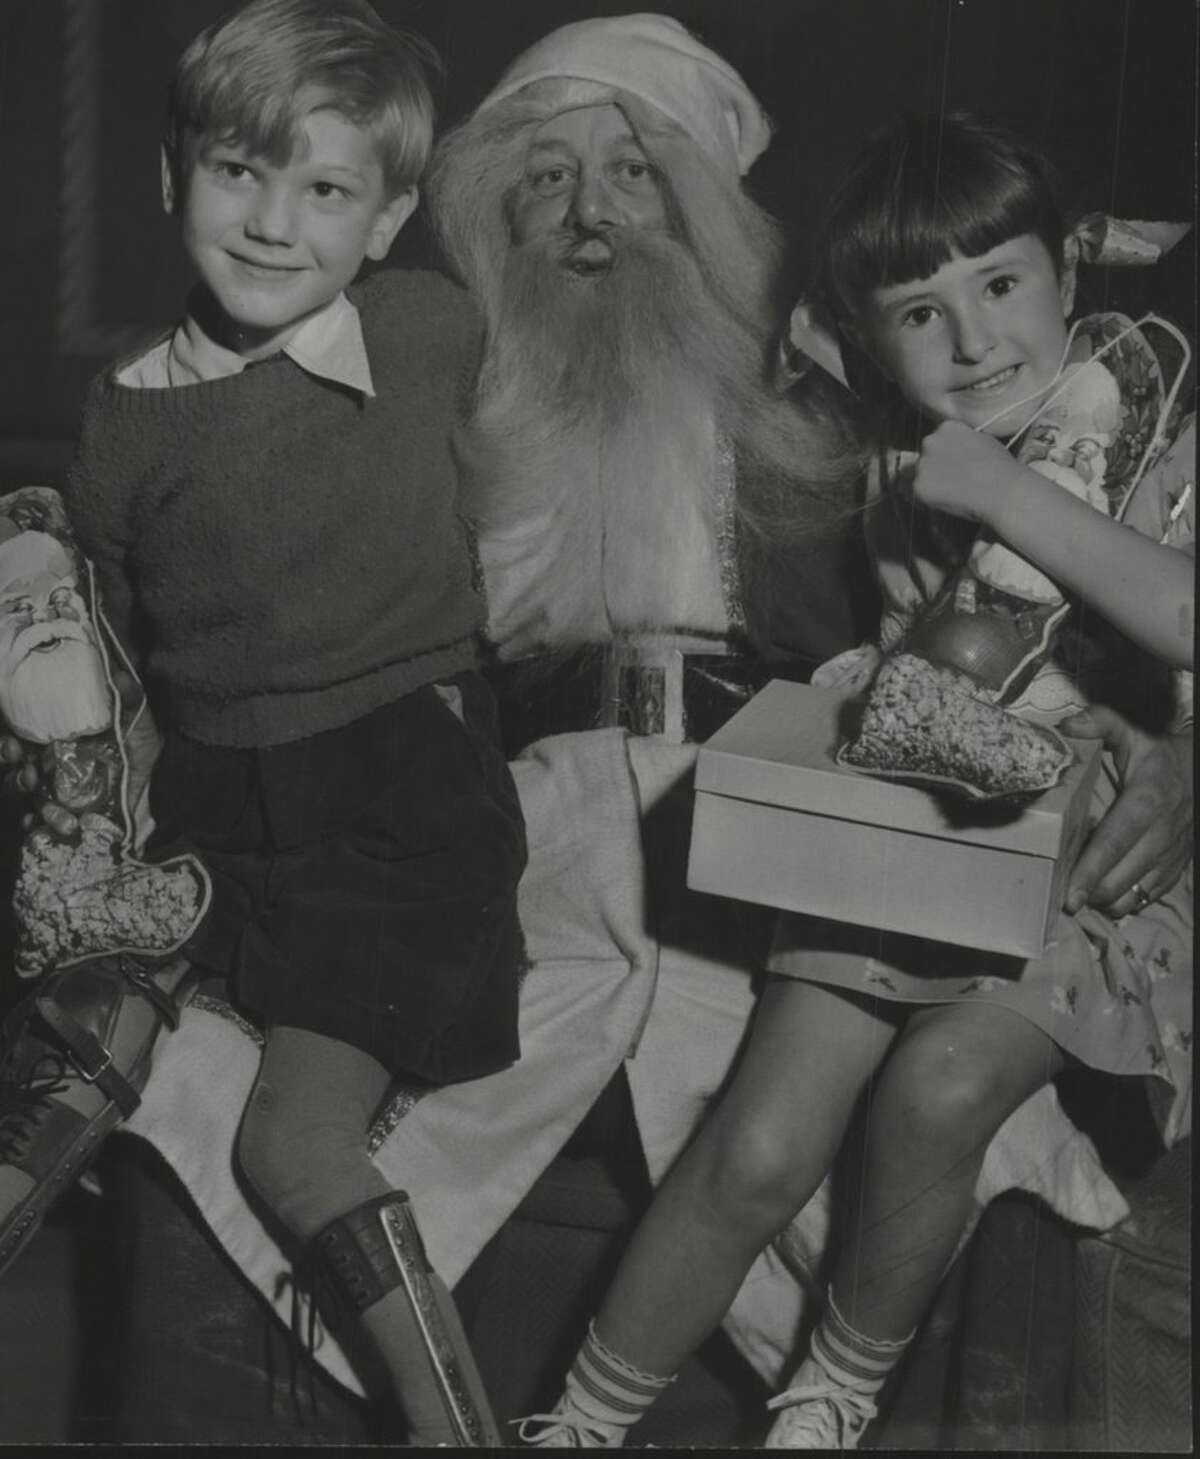 Bobby Dexter and Adrian Allen sit on Santa Claus' lap. December 23, 1943 (Times Union Archive)